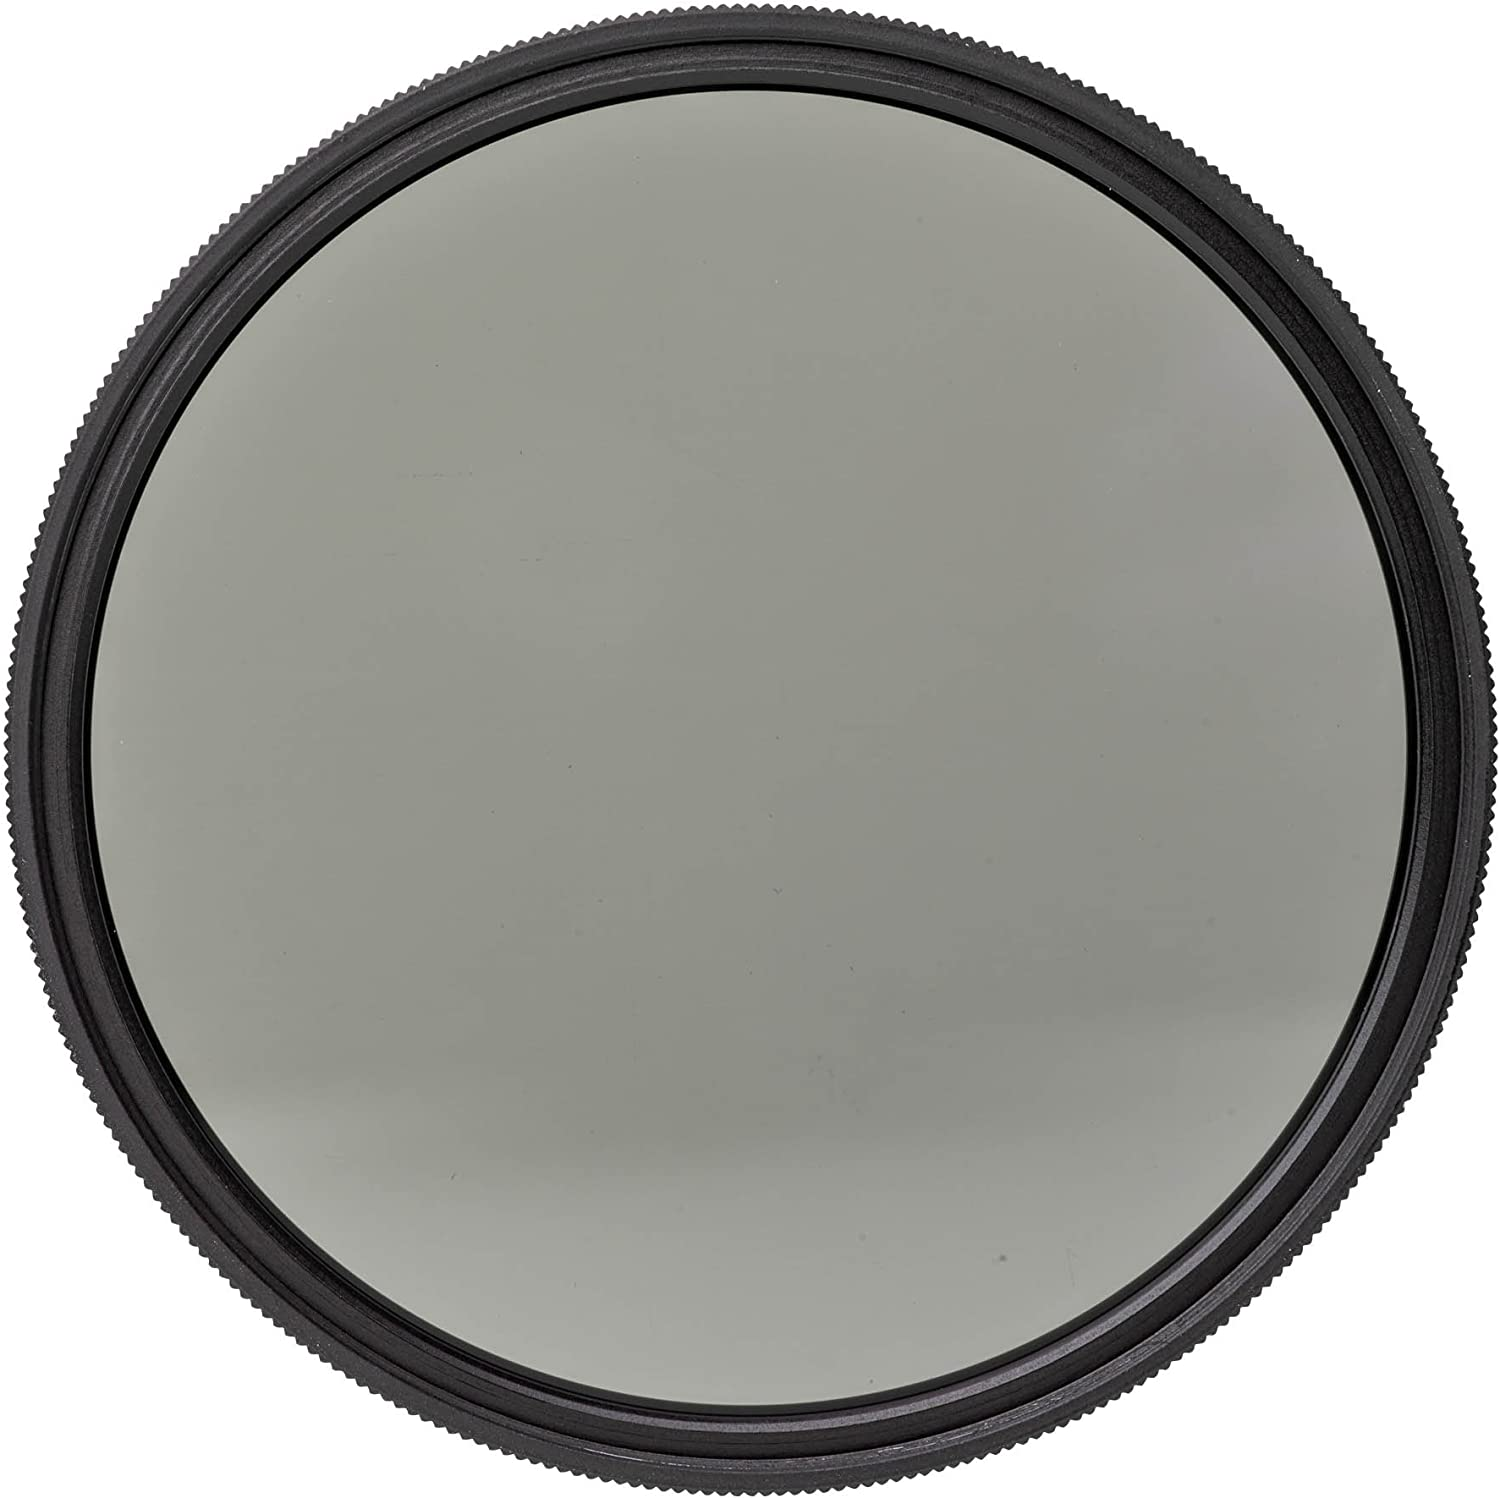 707739 Heliopan 77mm Linear Polarizer Filter